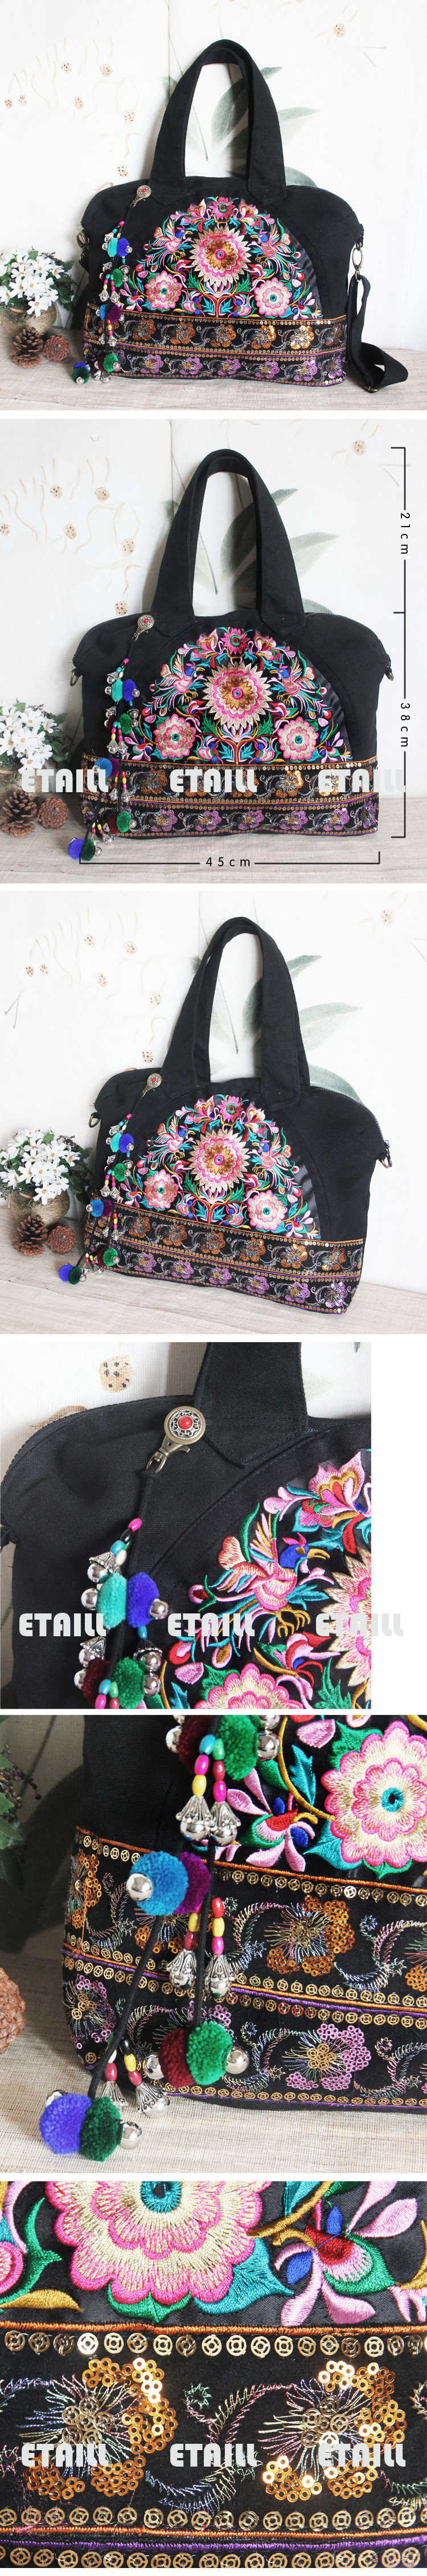 ethnic embroidered bag